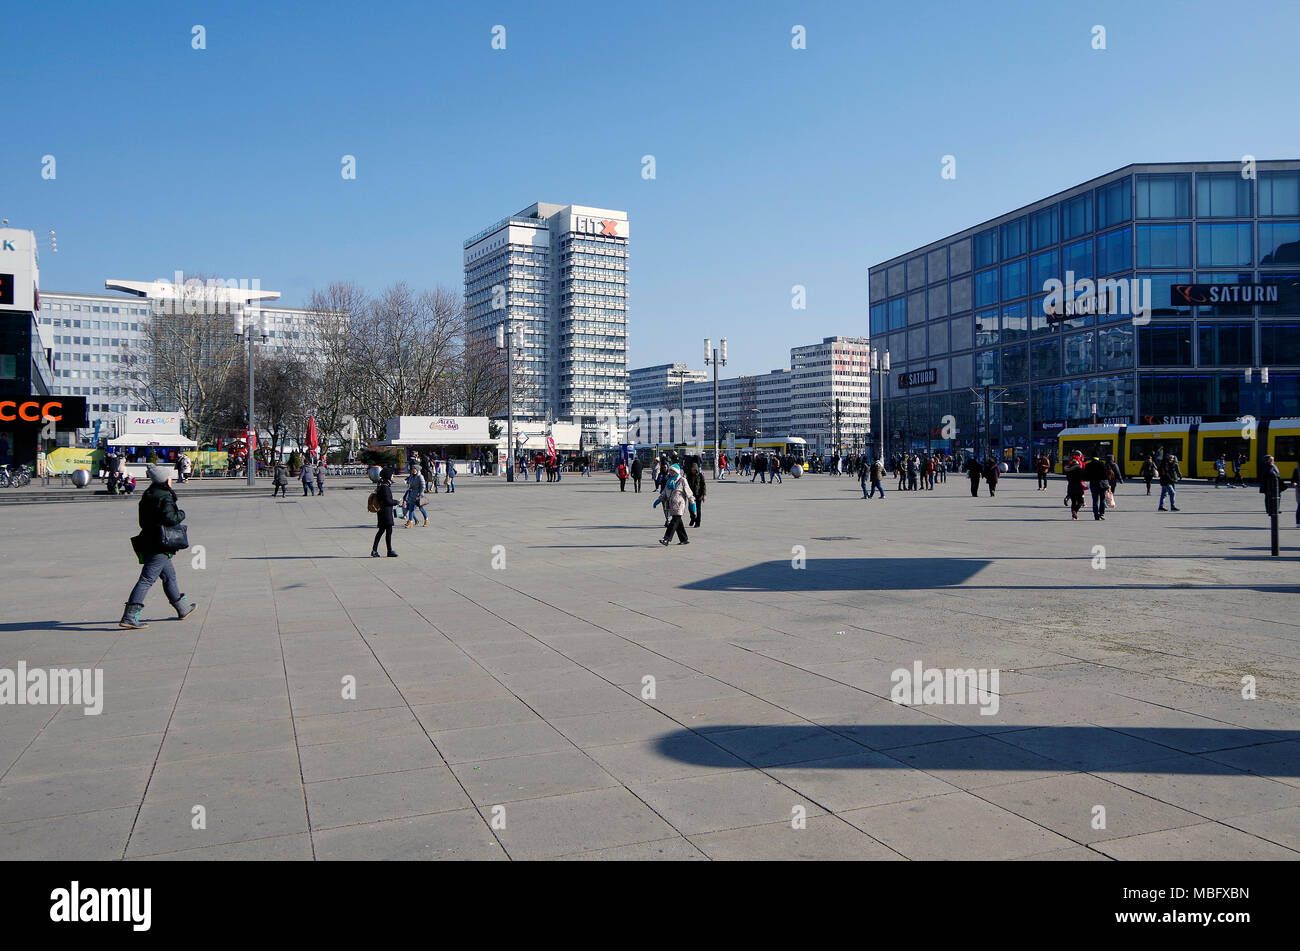 Alexanderplatz, traditional hub of Berlin's proletarian east, site of a million strong demonstration demanding reforms just days before wall came down - Stock Image